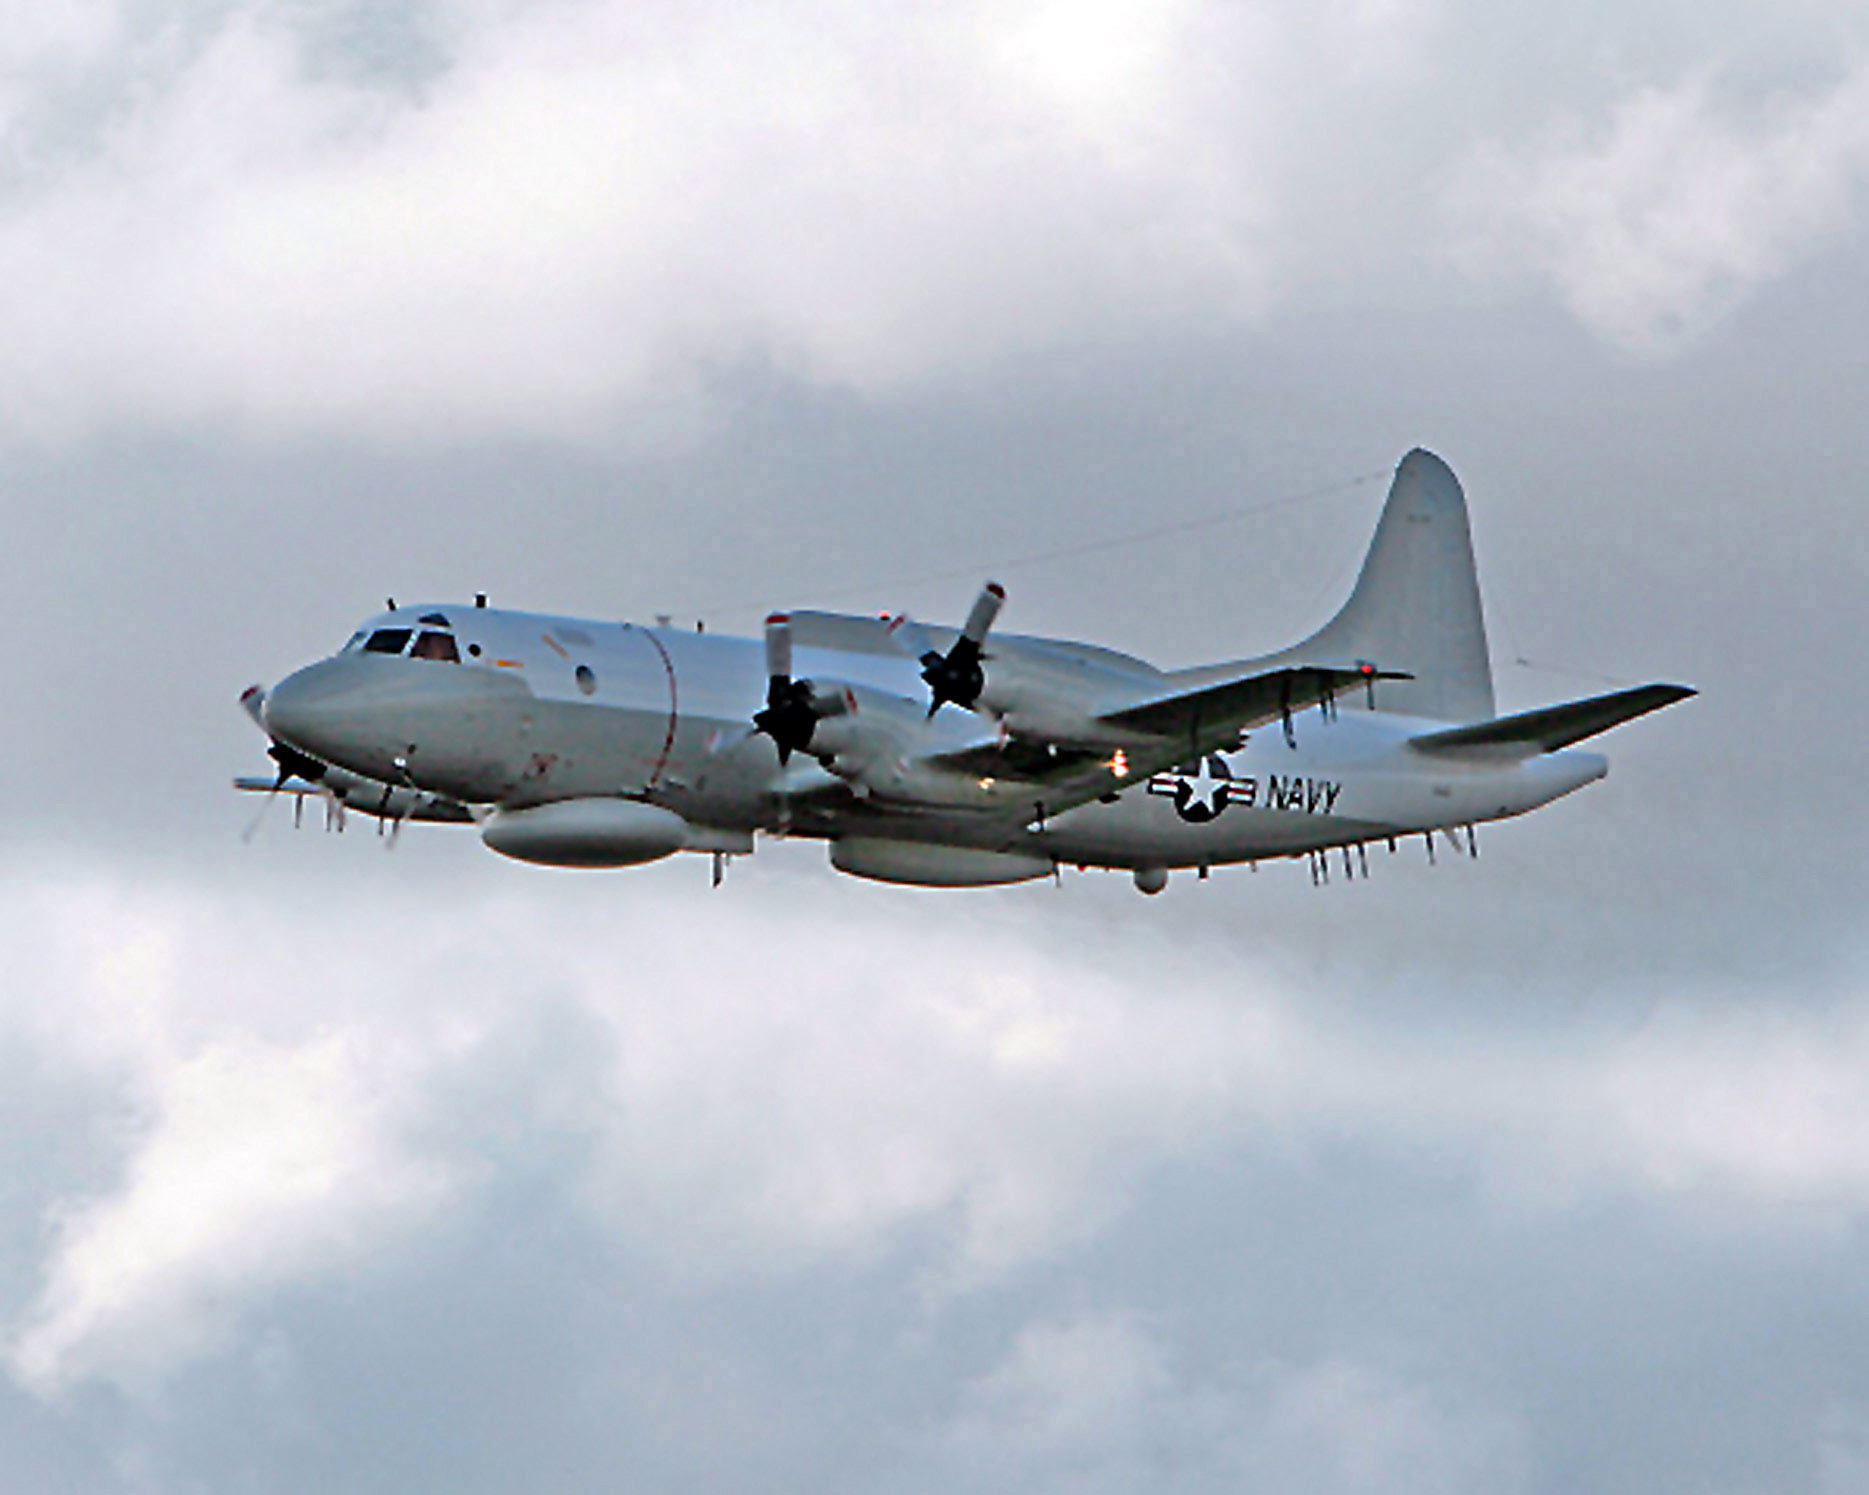 060329-N-9999X-001 (Mar. 29, 2006)   The first completed US Navy (USN) EP-3E Aries II conversion aircraft departs from the L-3 Communications modification facility in Waco, Texas (TX). The aircraft is a four-engine, low-wing, electronic warfare and reconnaissance aircraft utilizing state-of-the-art electronic surveillance for its primary mission.  The aircraft is a new version of the USN P-3C aircraft and it's heading to Naval Air Station (NAS) Patuxent River, Maryland (MD), for testing and fleet training.  U.S. Navy official photo (RELEASED) (SUBSTANDARD)